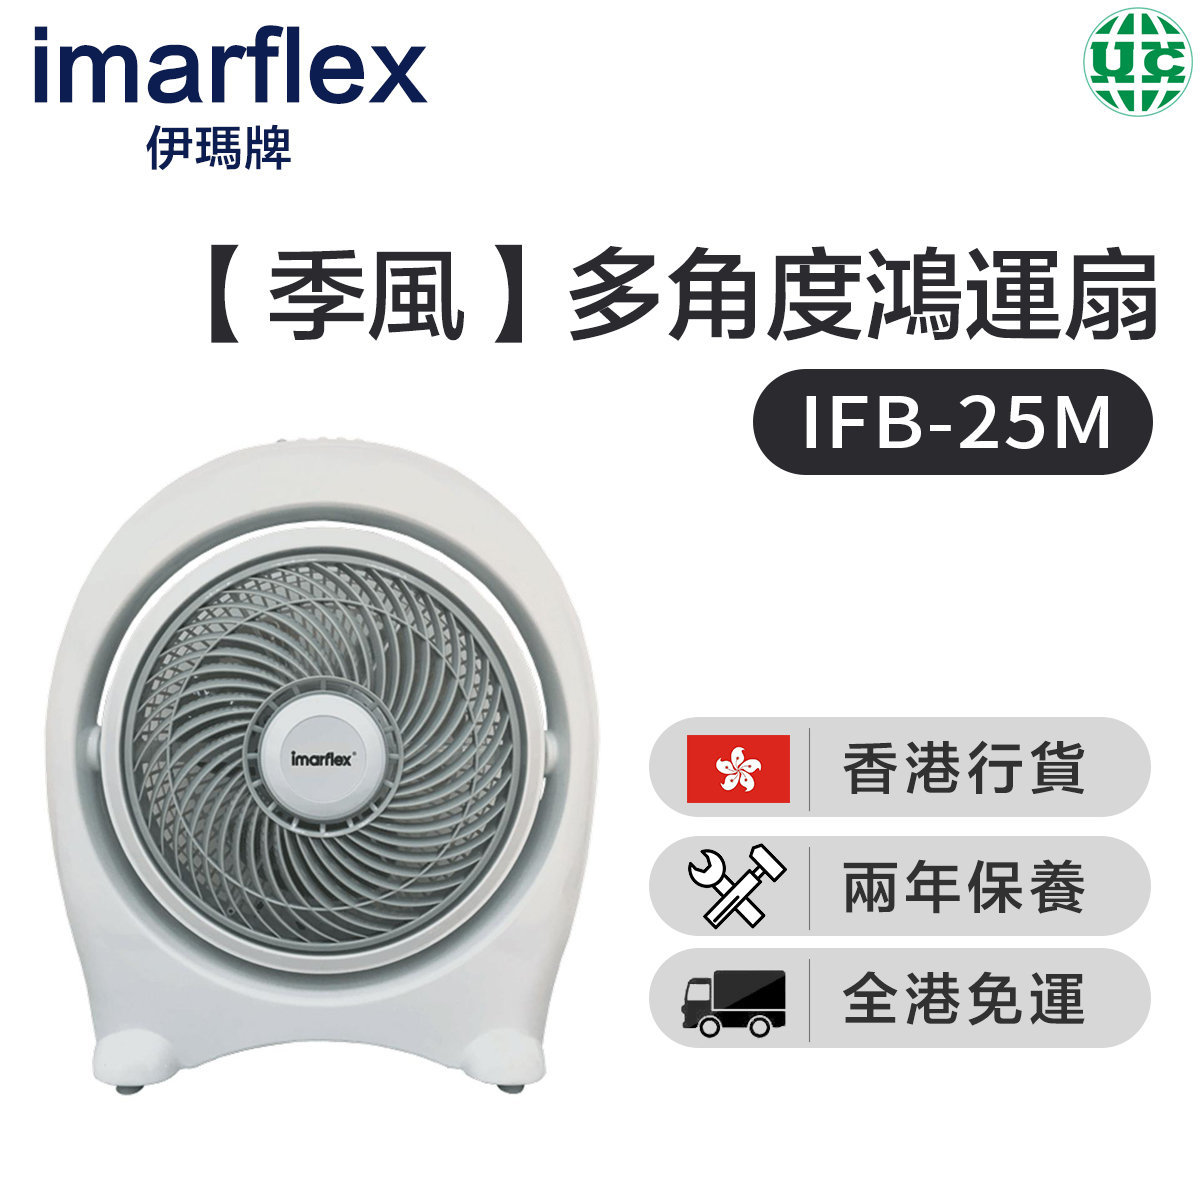 IMARFLEX IFB-25M monsoon 10-inch multi-angle lucky fan(Hong Kong licensed)